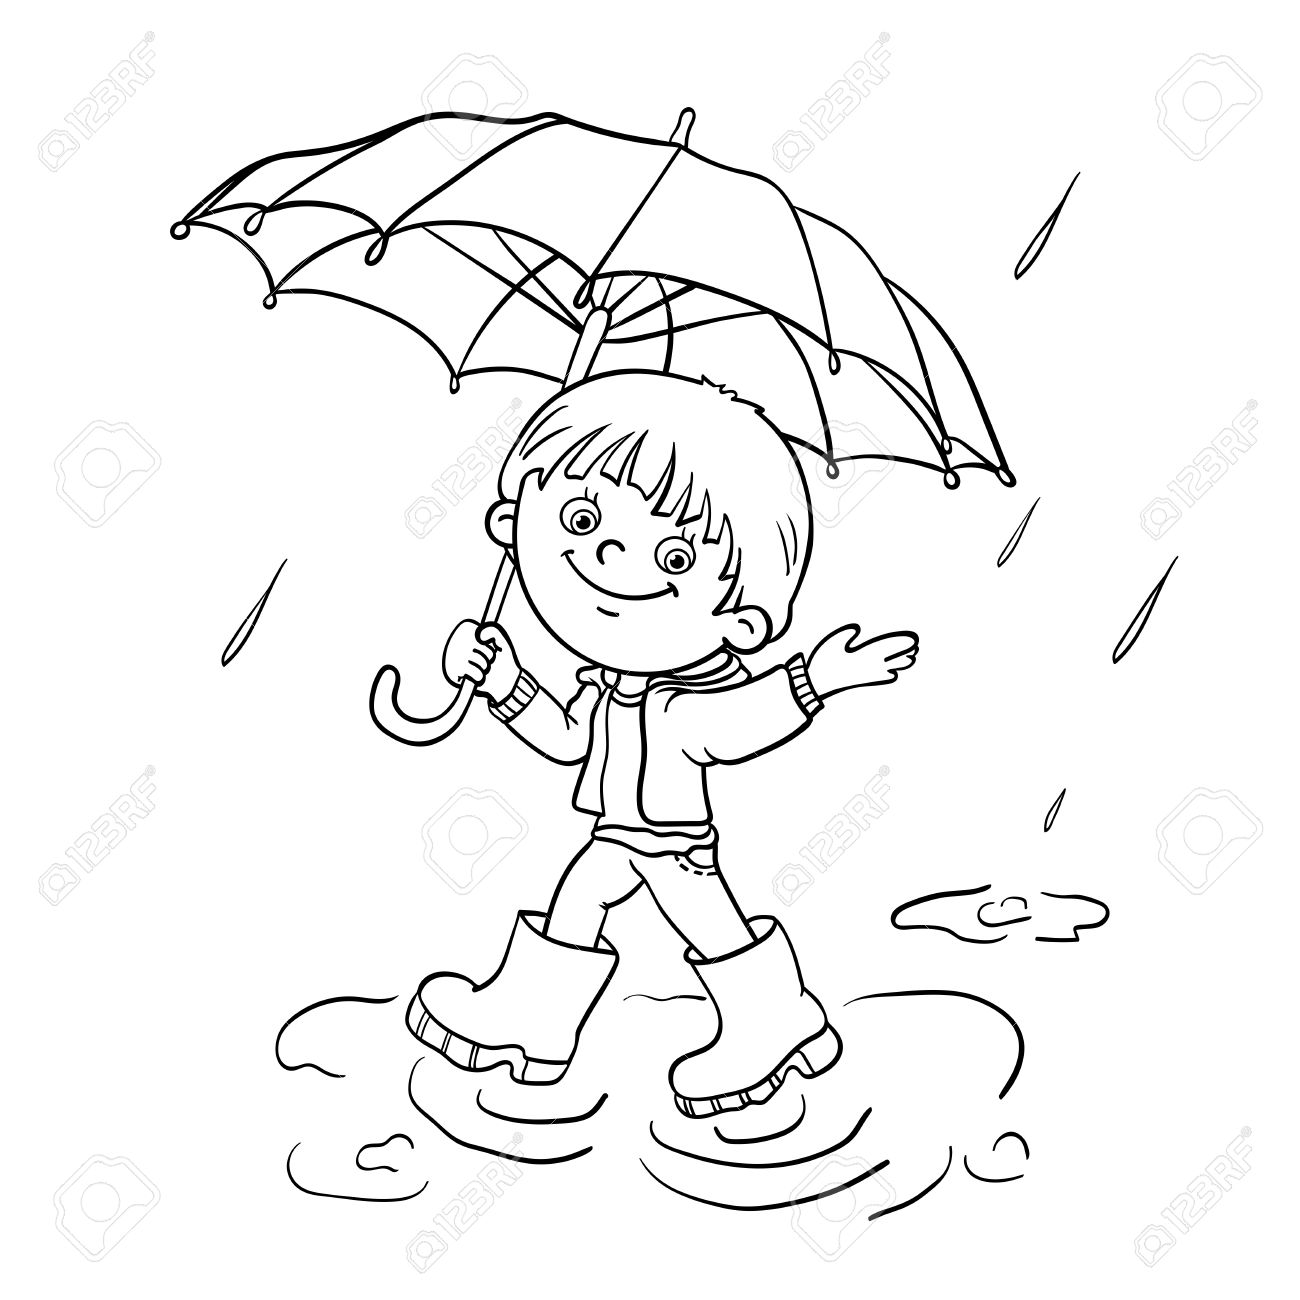 Boy With Umbrella Coloring Page | Coloring Pages